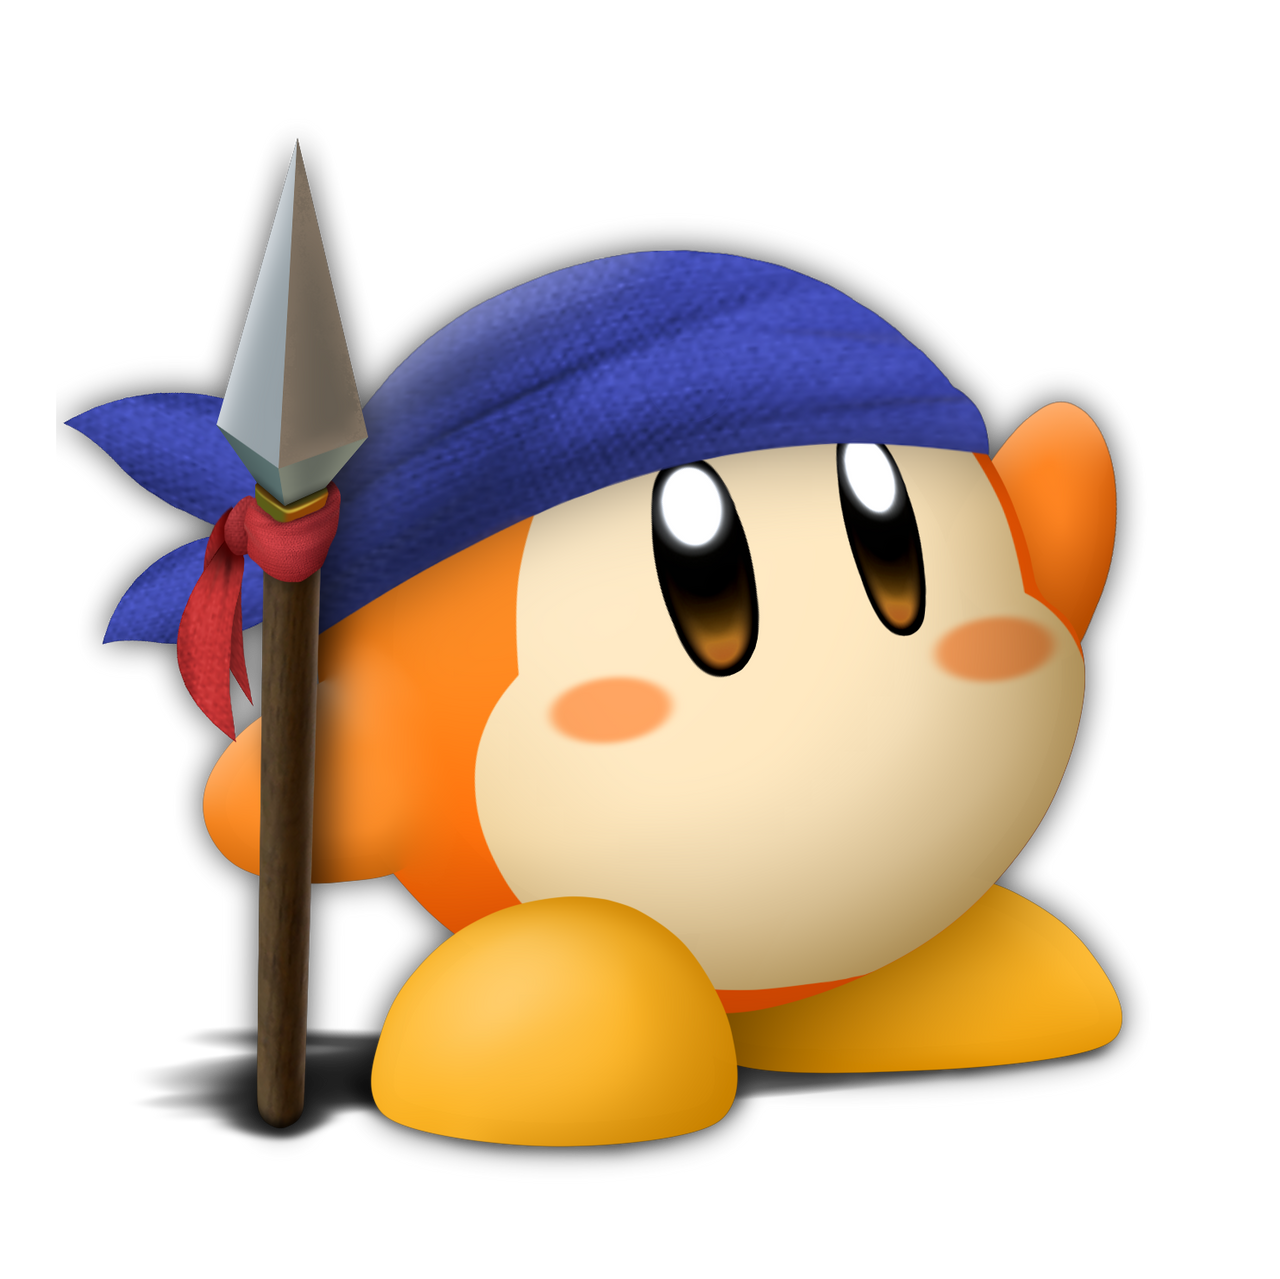 Bandana Waddle Dee Joins Super Smash Bros By